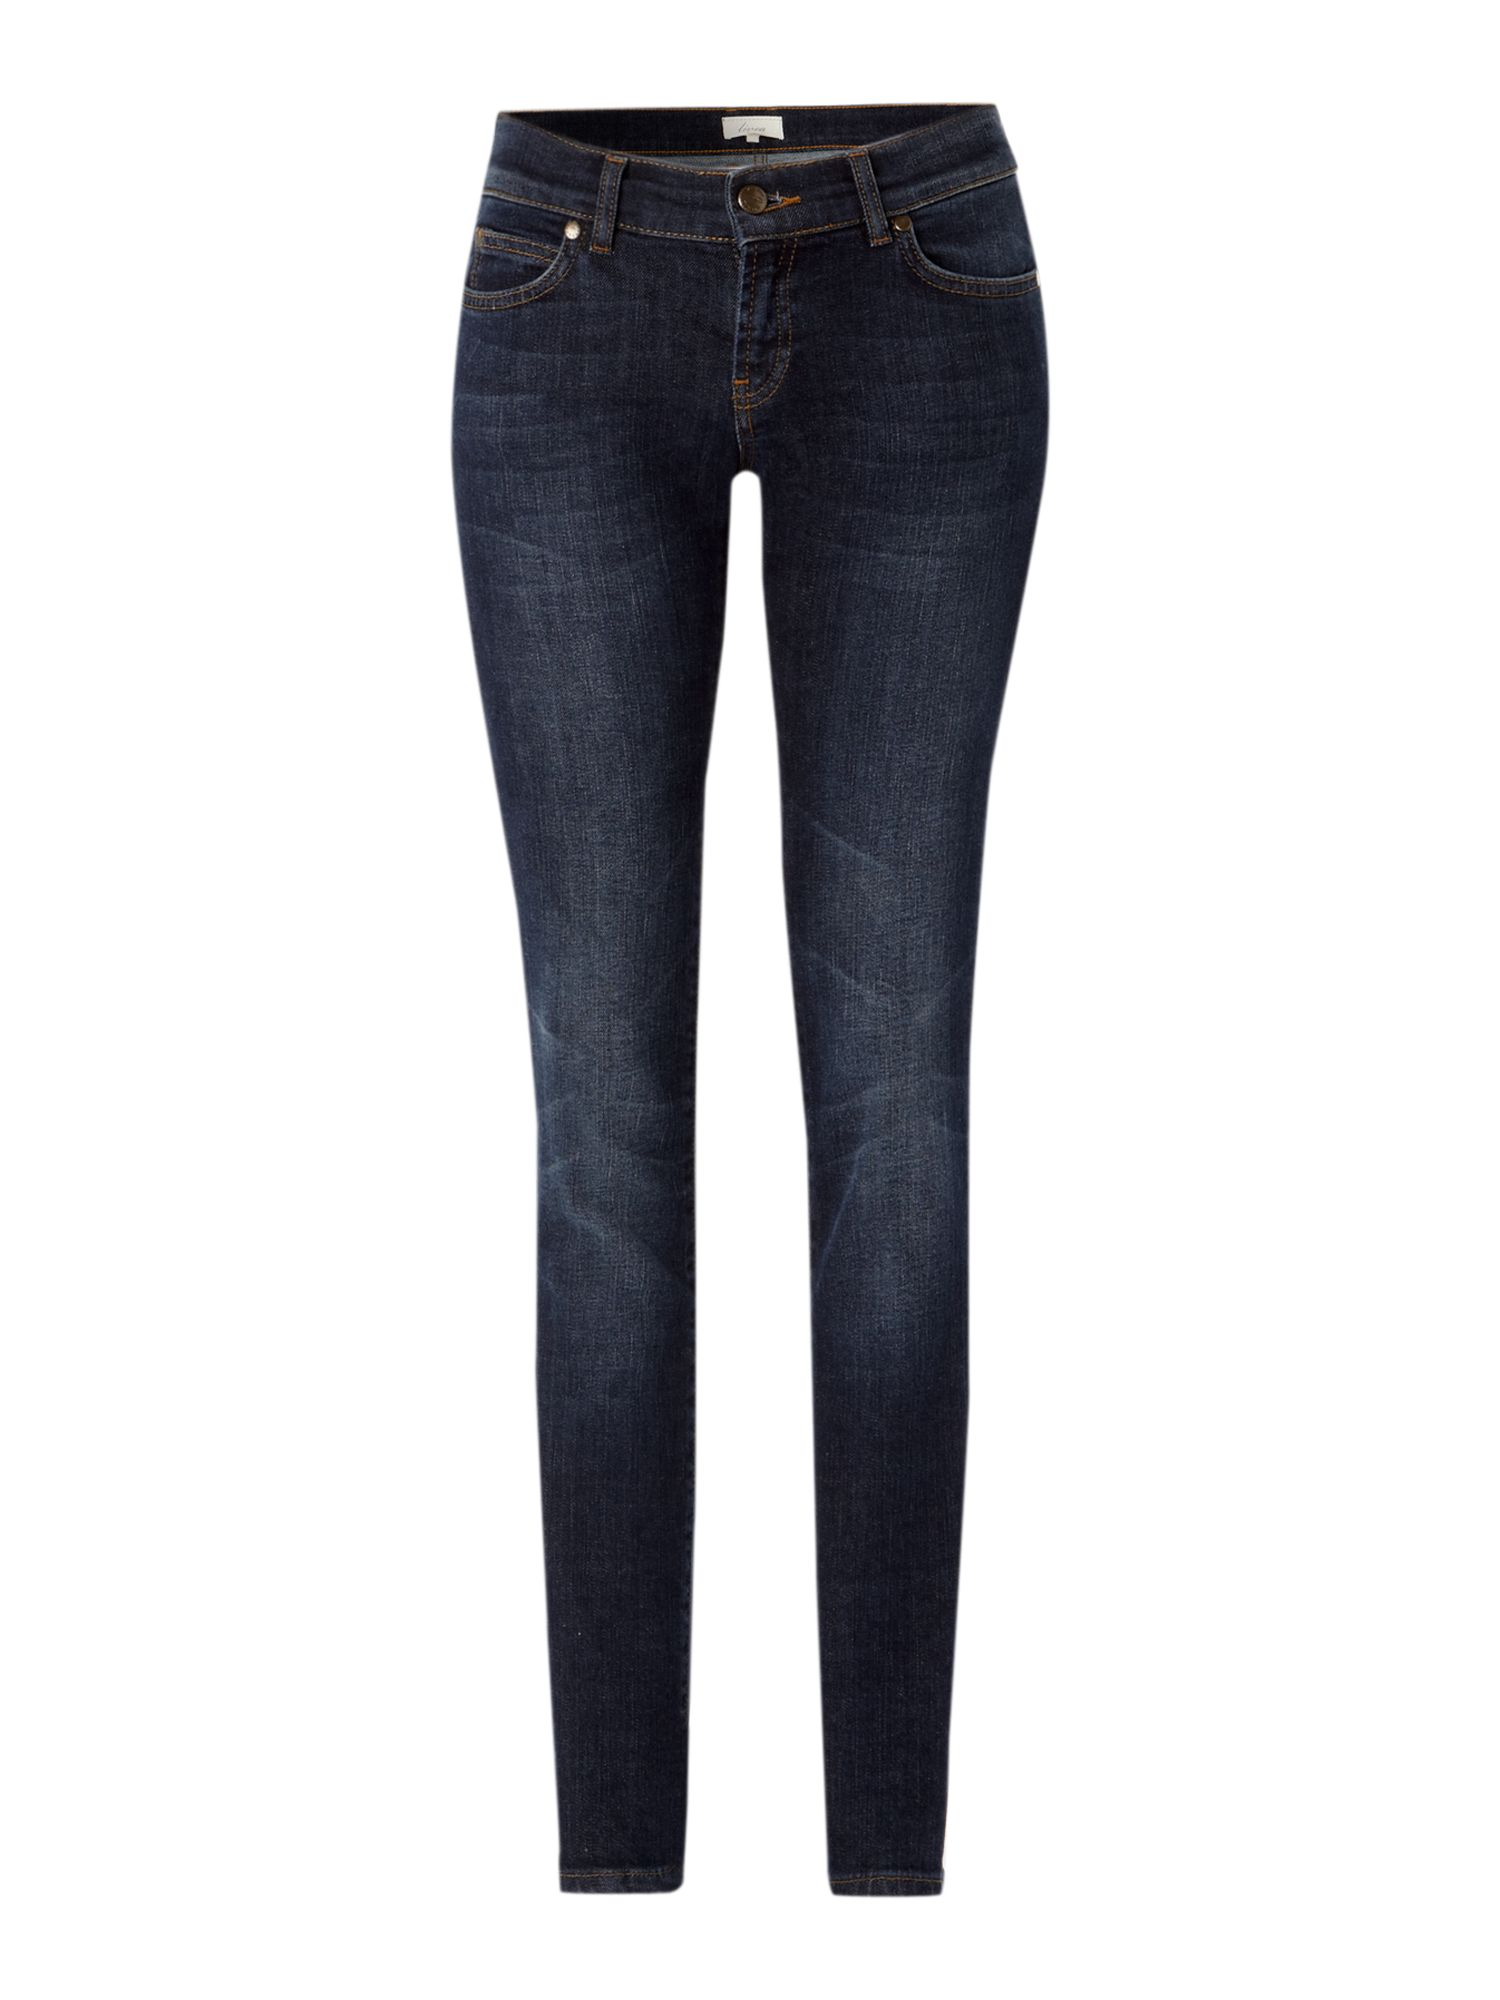 Ladies slim leg jeans